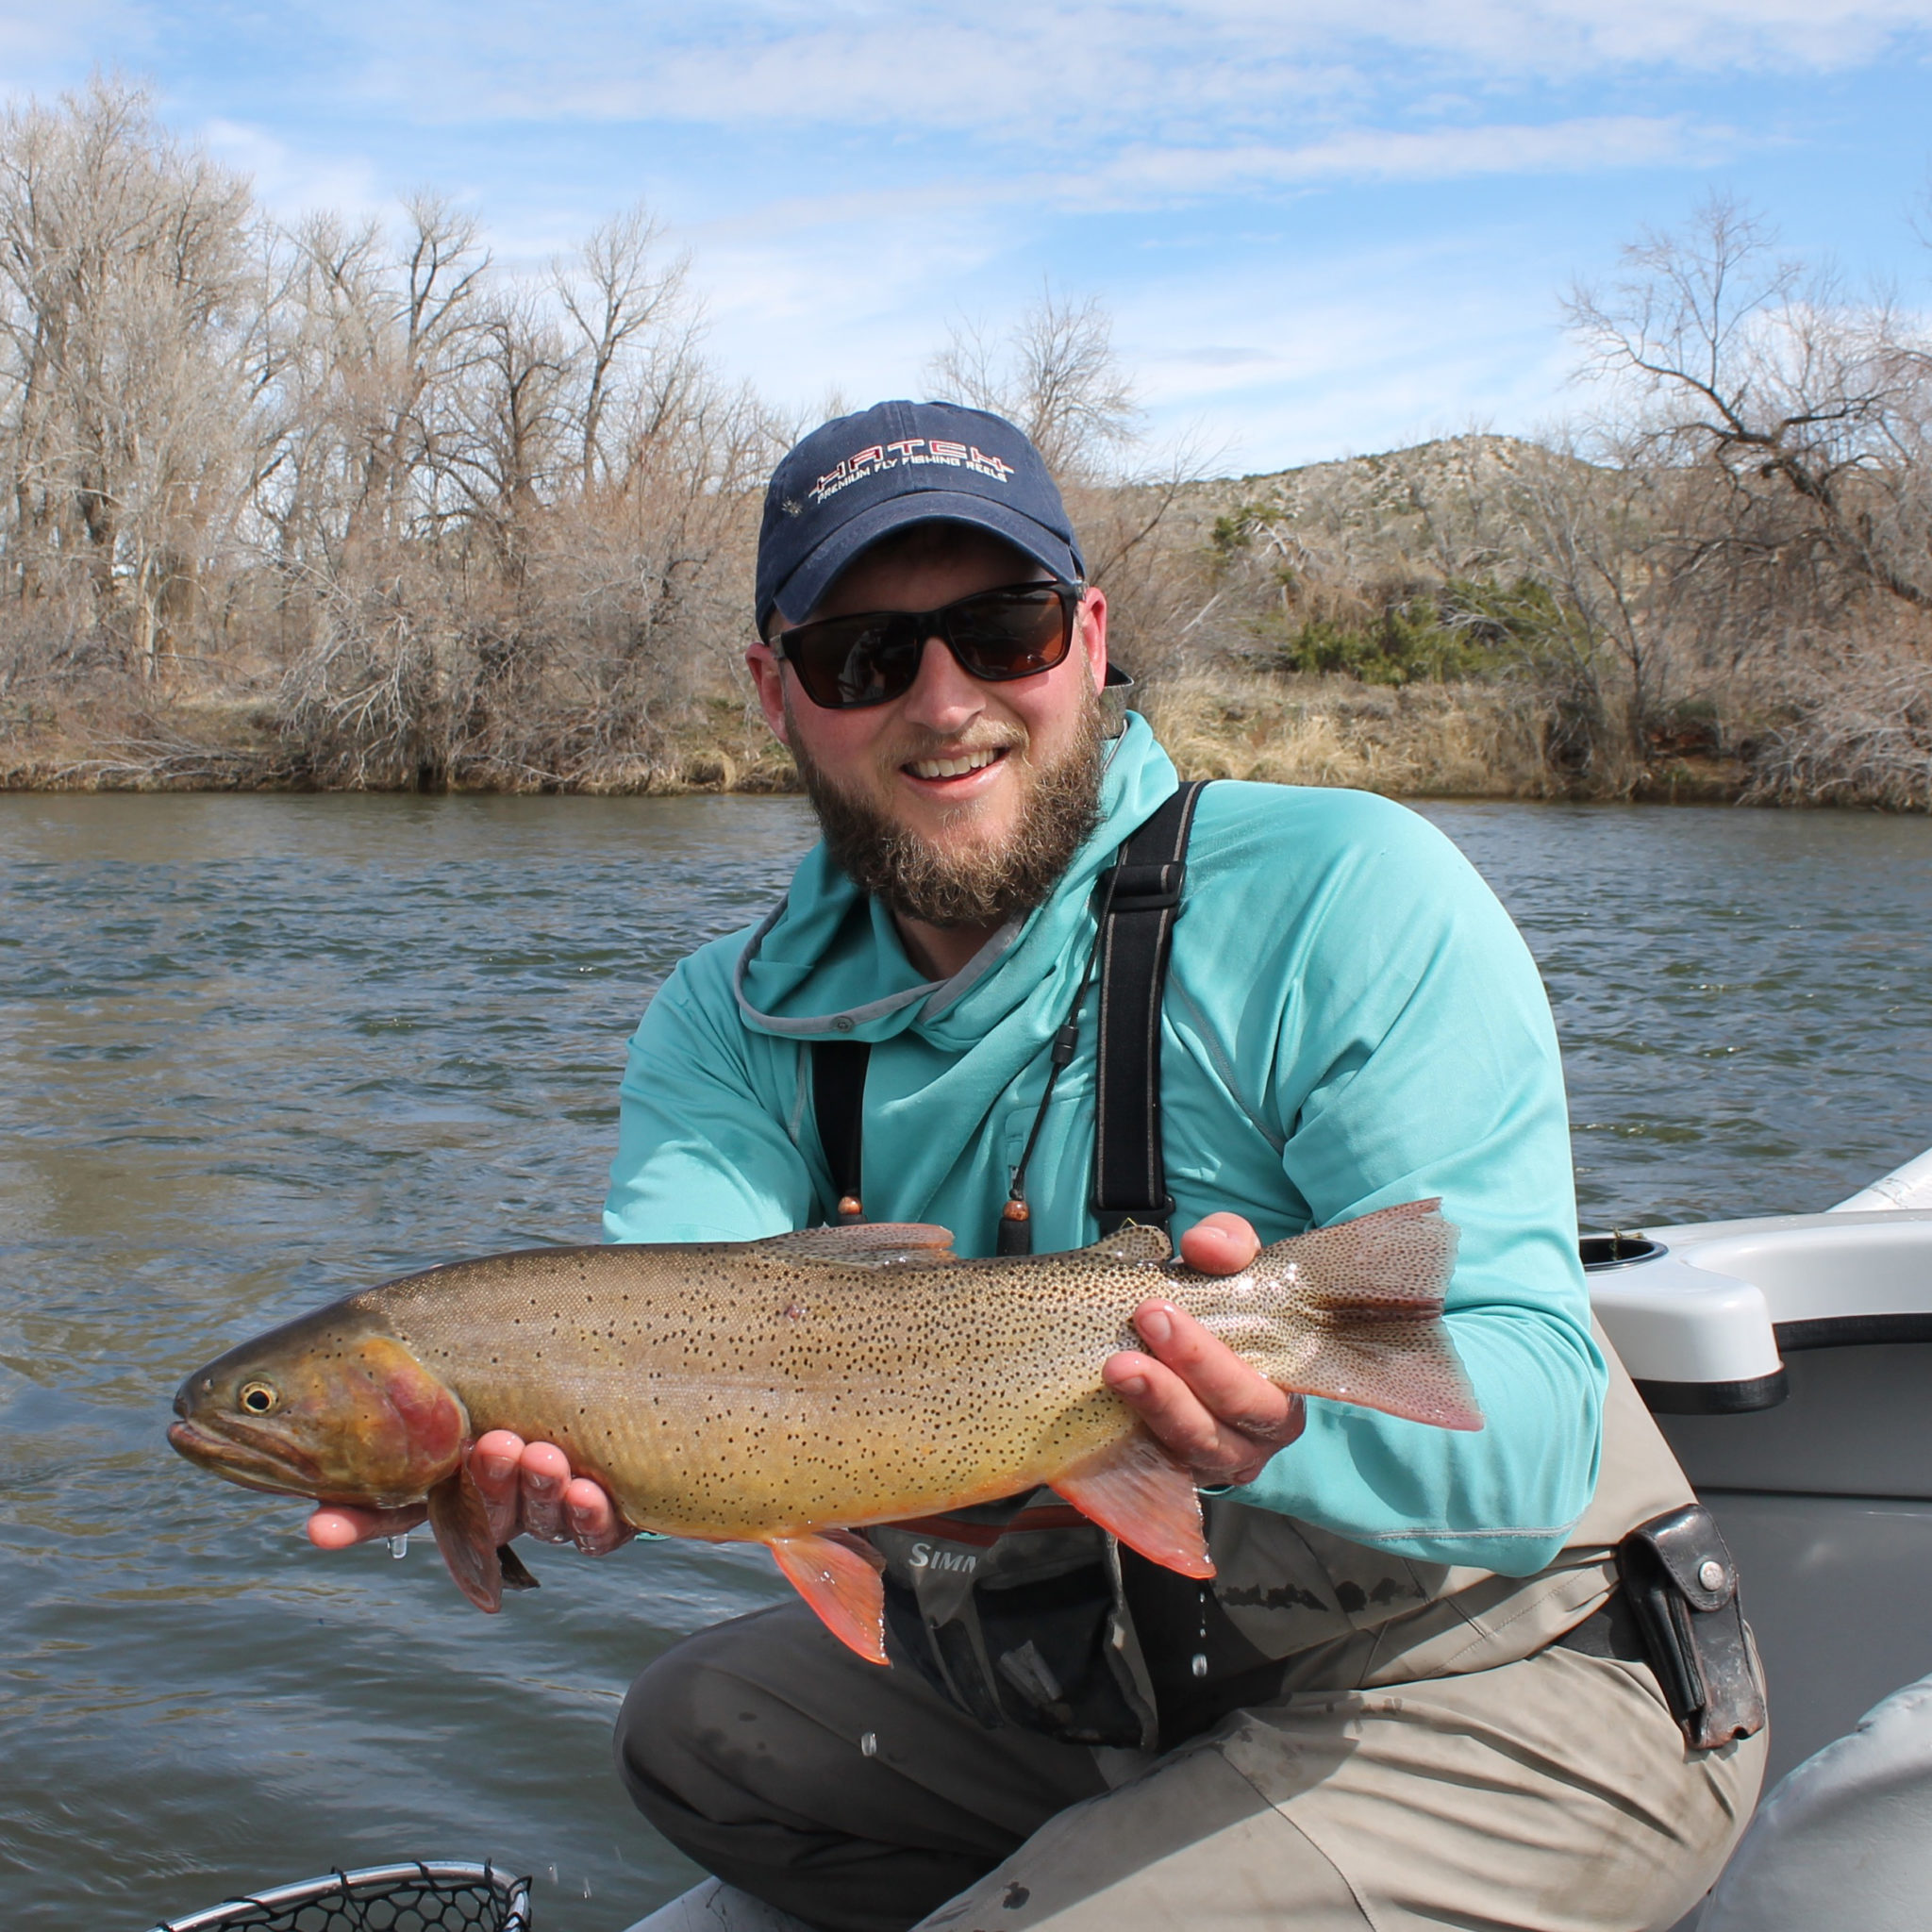 Fly fishing utah wyoming with dreamcatcher outdoors for Trout fishing utah